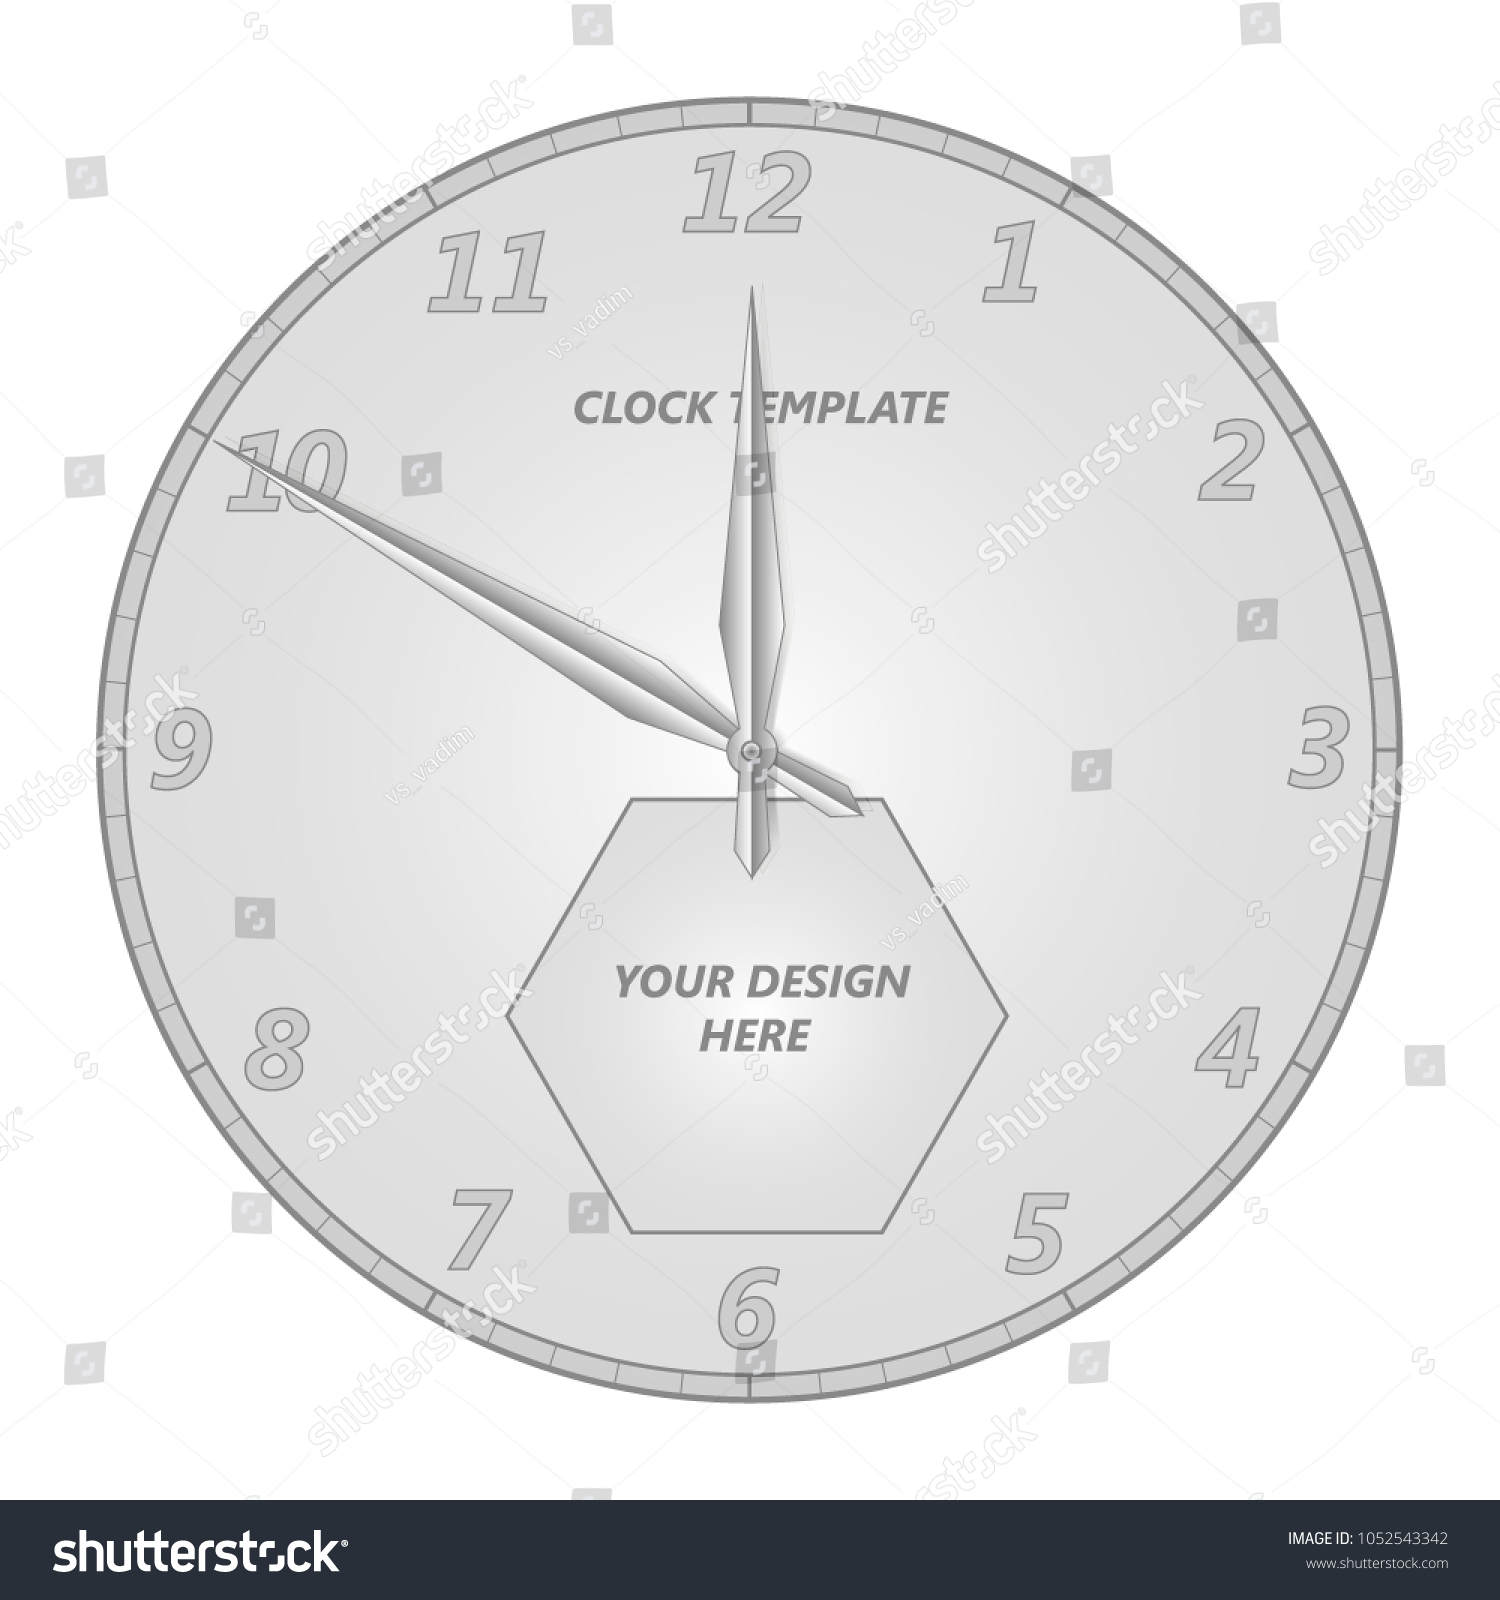 Luxury Clock Template With Minutes Adornment - Documentation ...